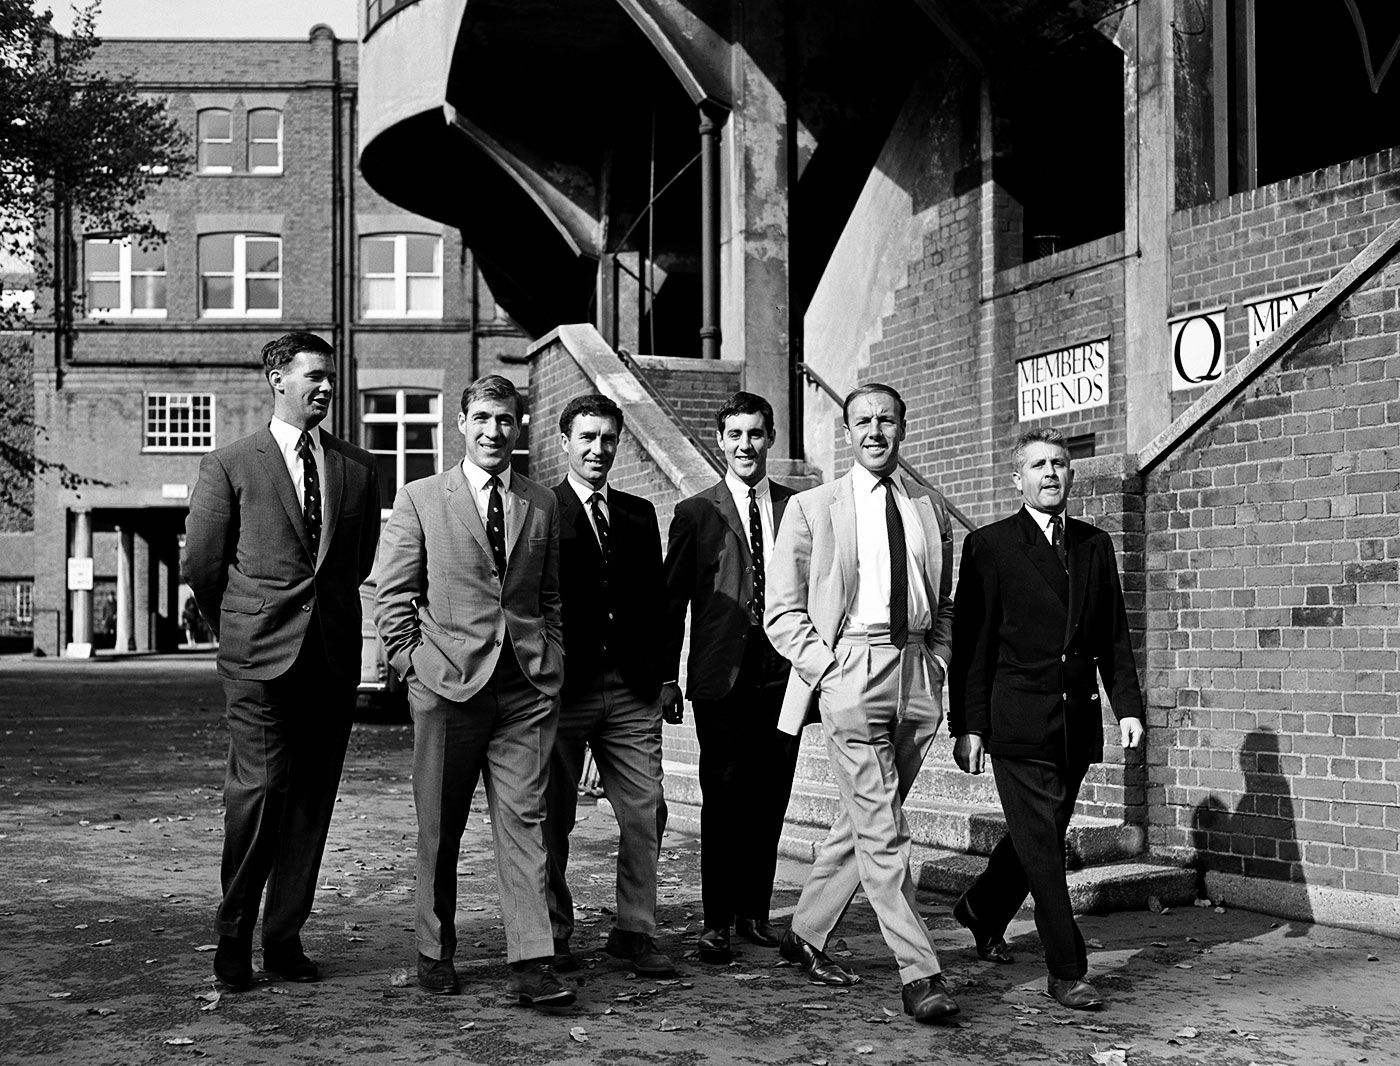 The Middlesex crew in 1964: Brearley, third from right, flanked by Fred Titmus on his right, and John Murray. Peter Parfitt is second from left